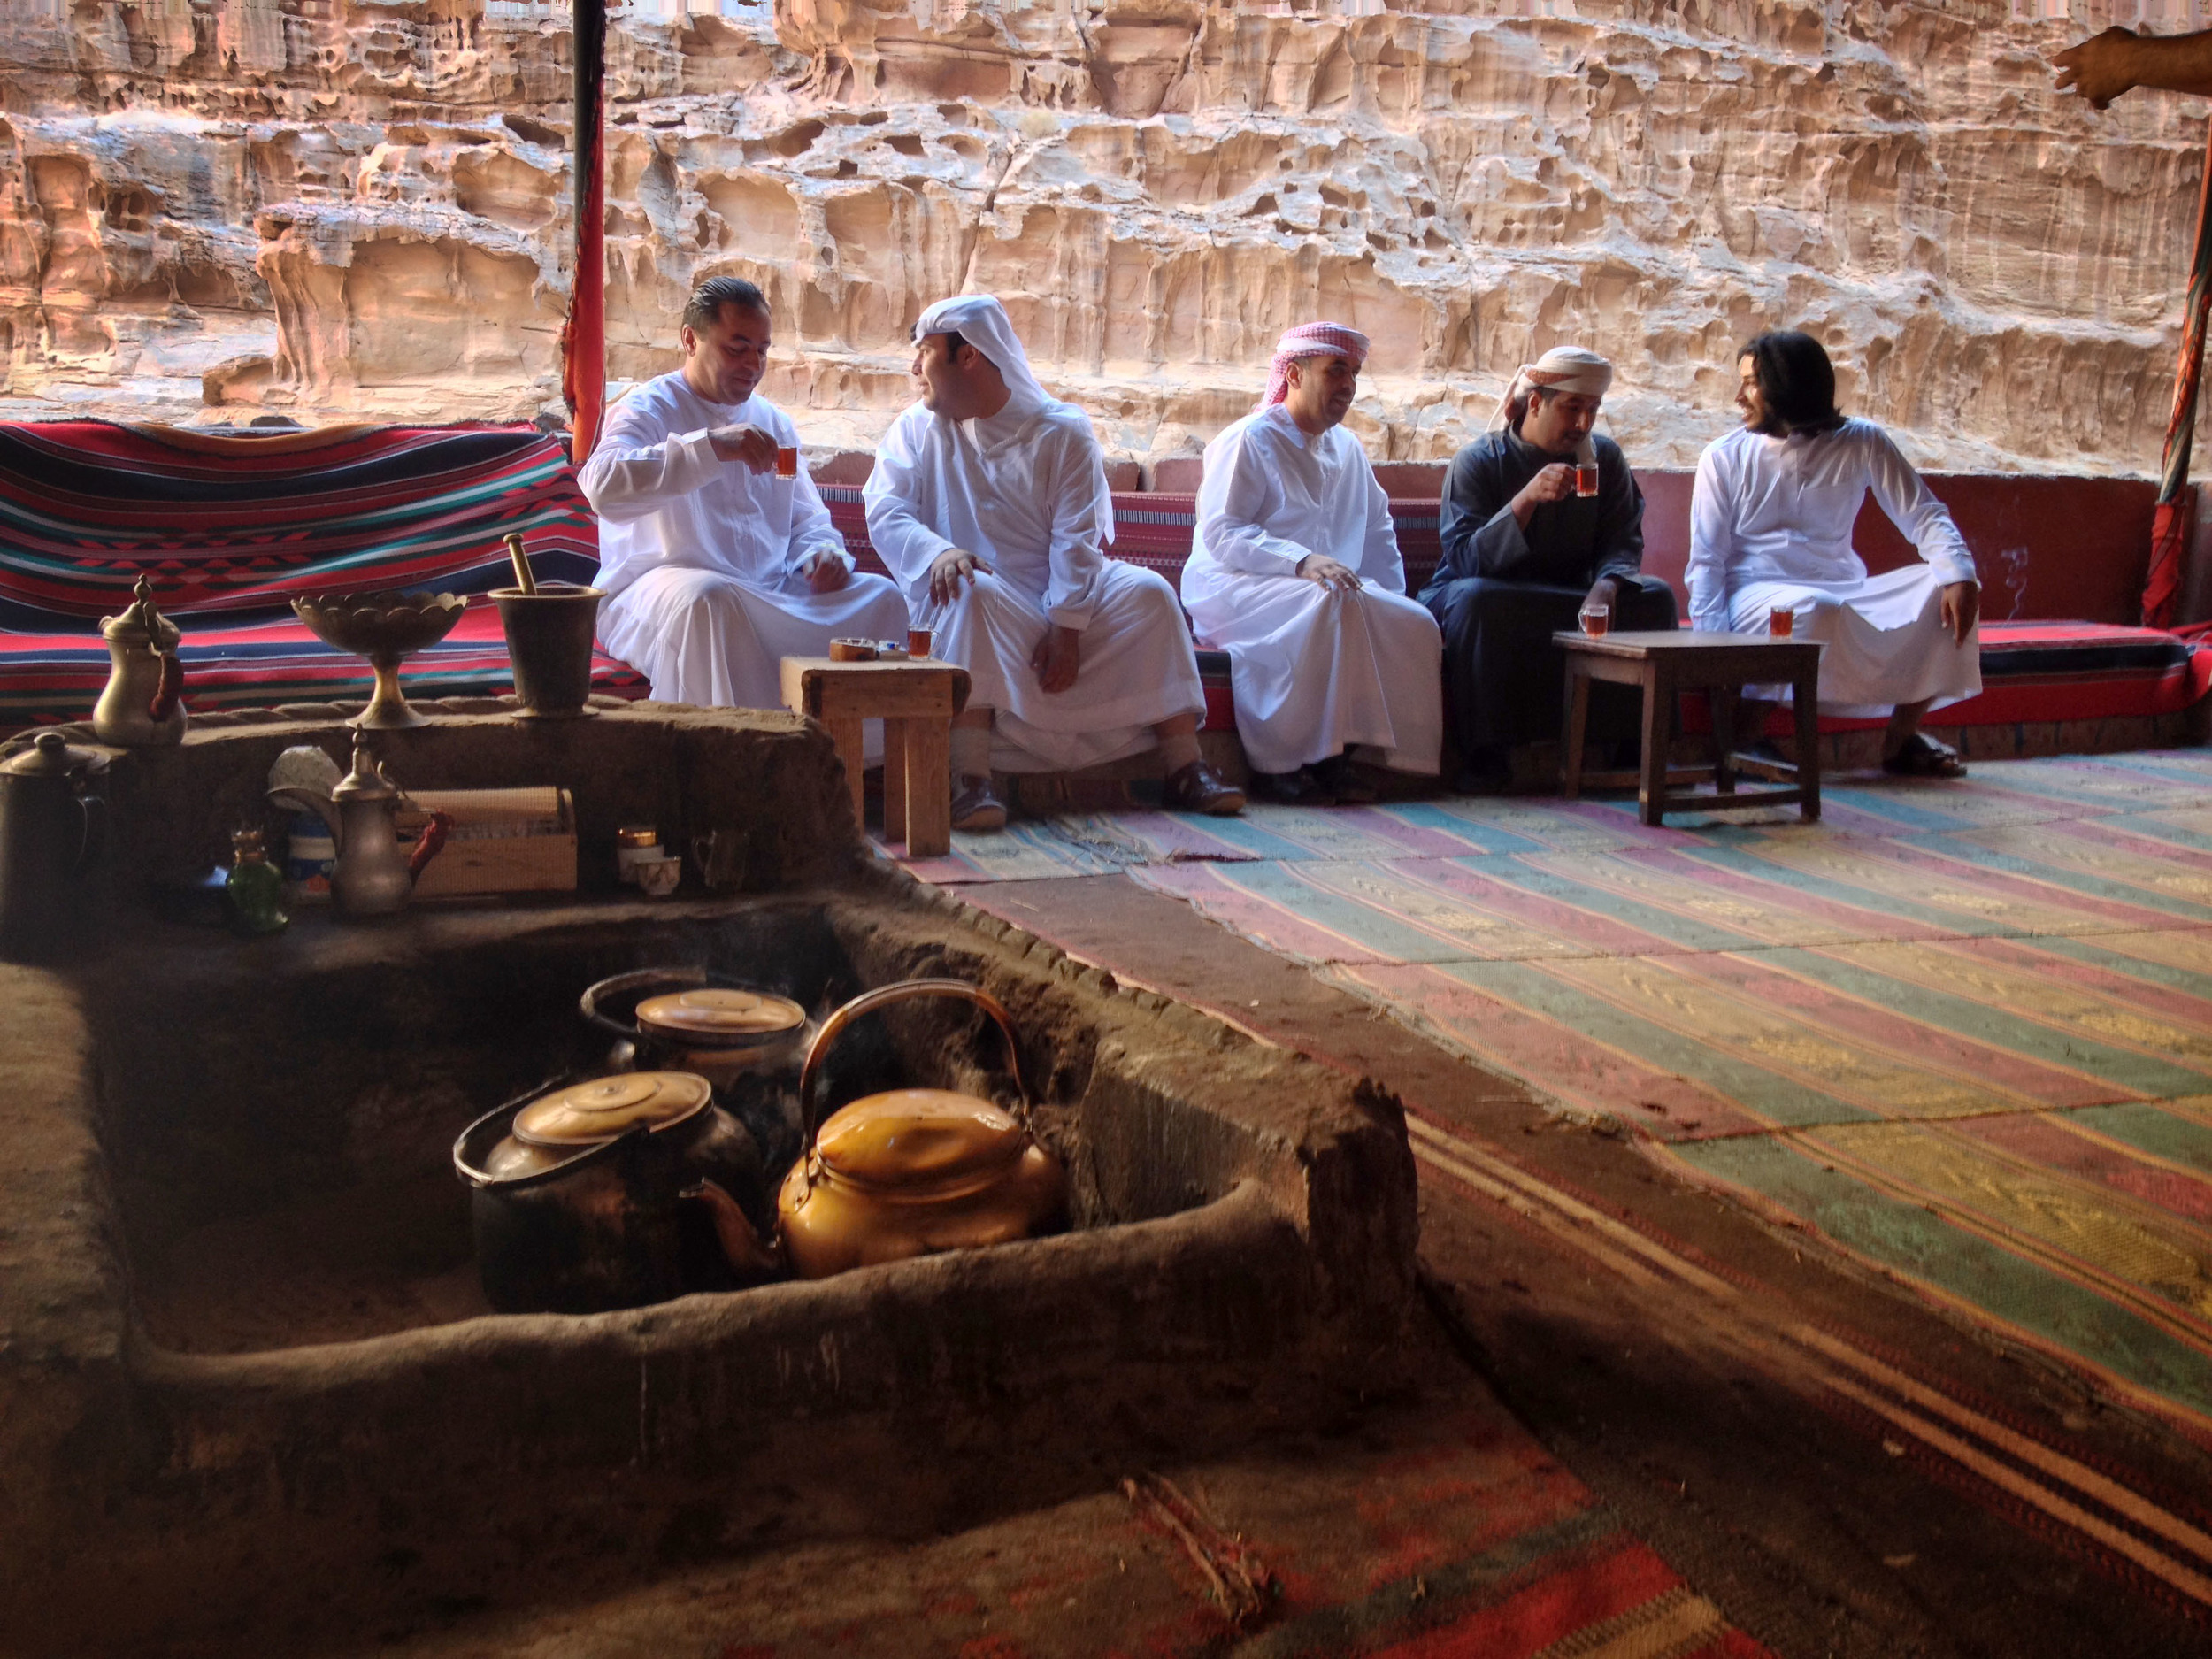 2.11.13 Tea break in Wadi Rum.JPG